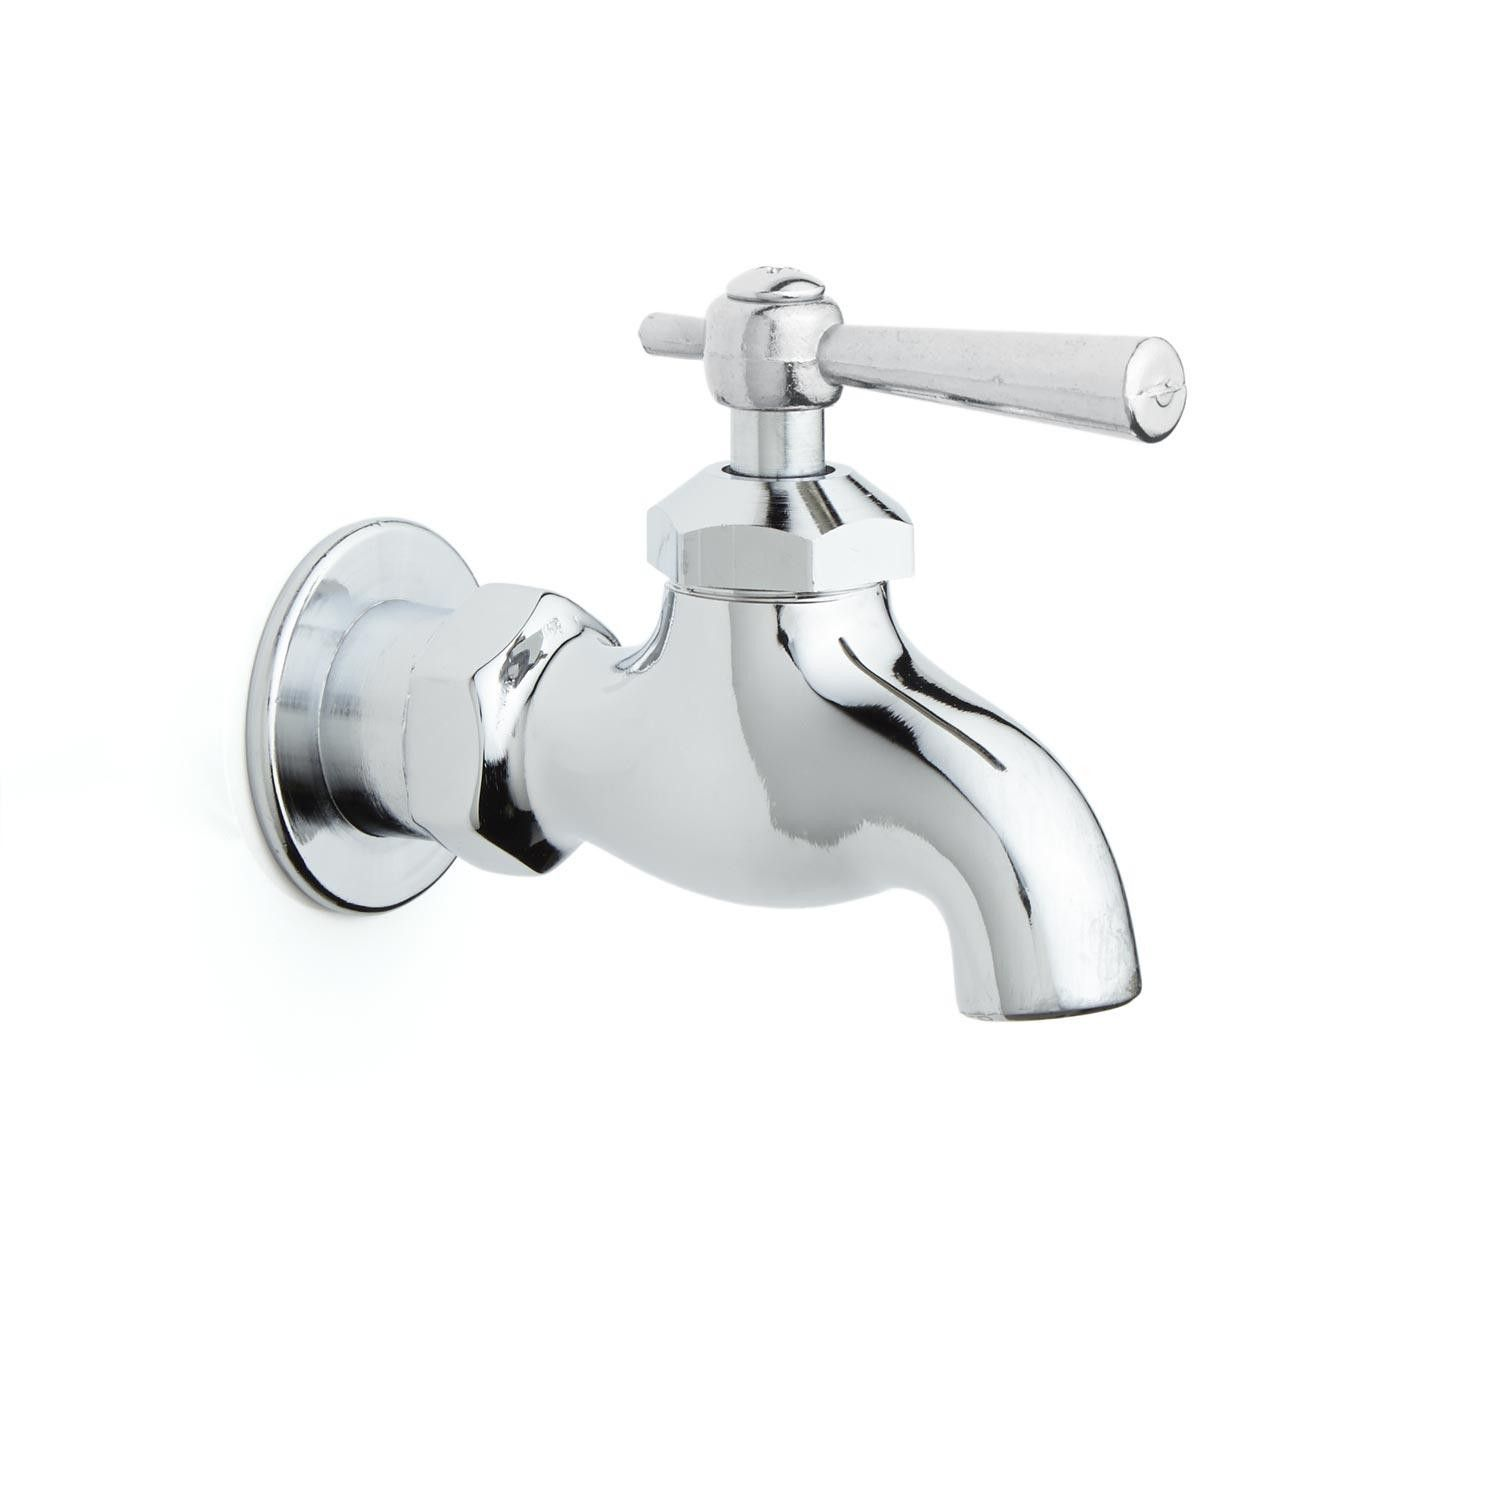 bathroom fau sink htm handle faucet bathtub single deck mounted paita p